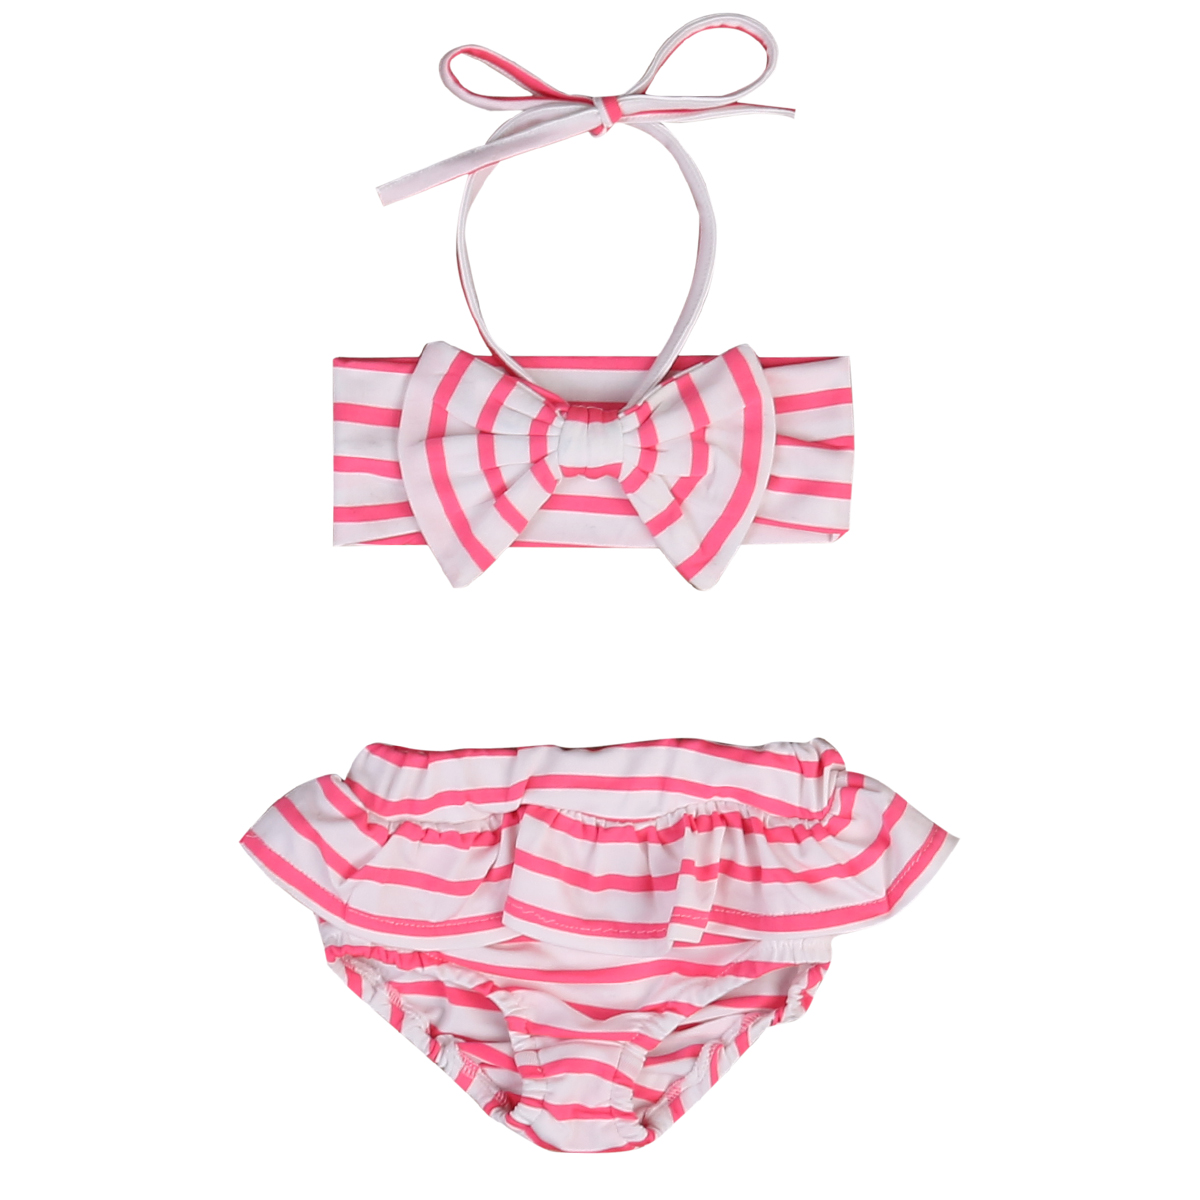 2017 Cute 2-7Y Kids Baby Girls Pink Bikini Suit Set Striped Swimsuit Triangle Belt Bathing Swimming Pool Beachwear Swimwear